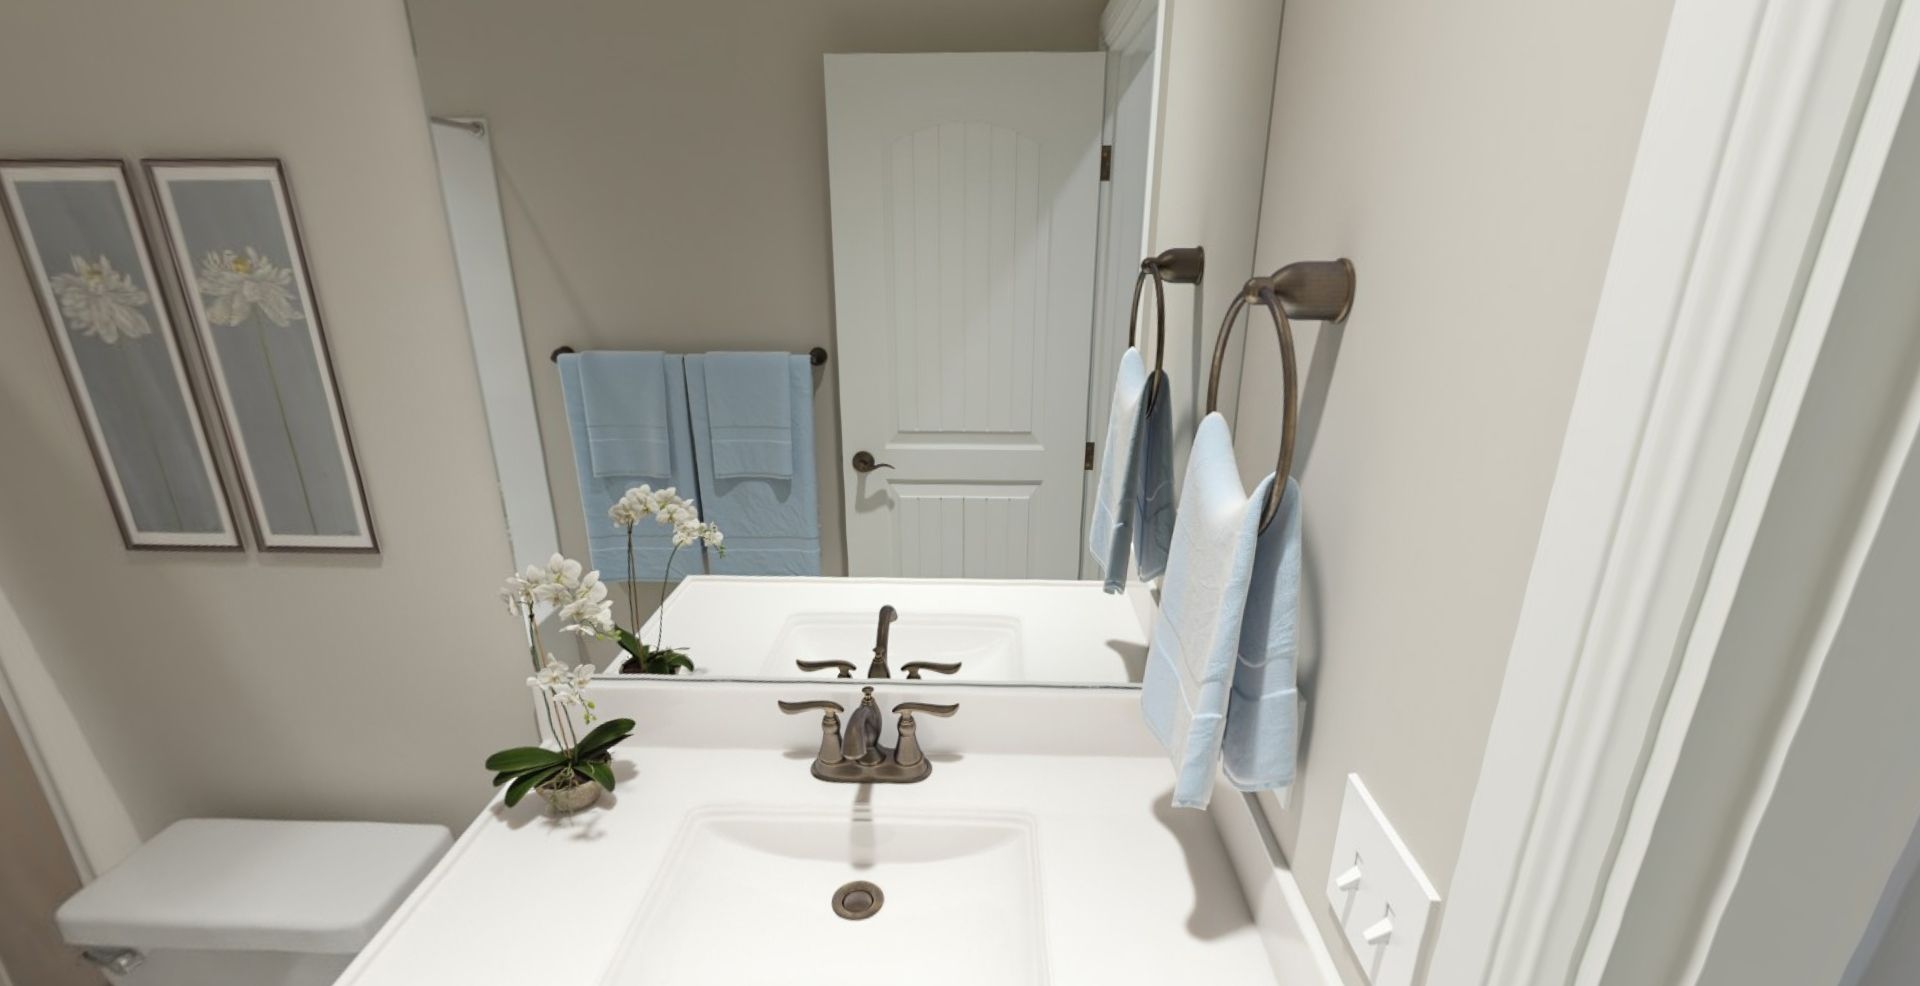 Bathroom featured in the Harmony By Olthof Homes in Gary, IN